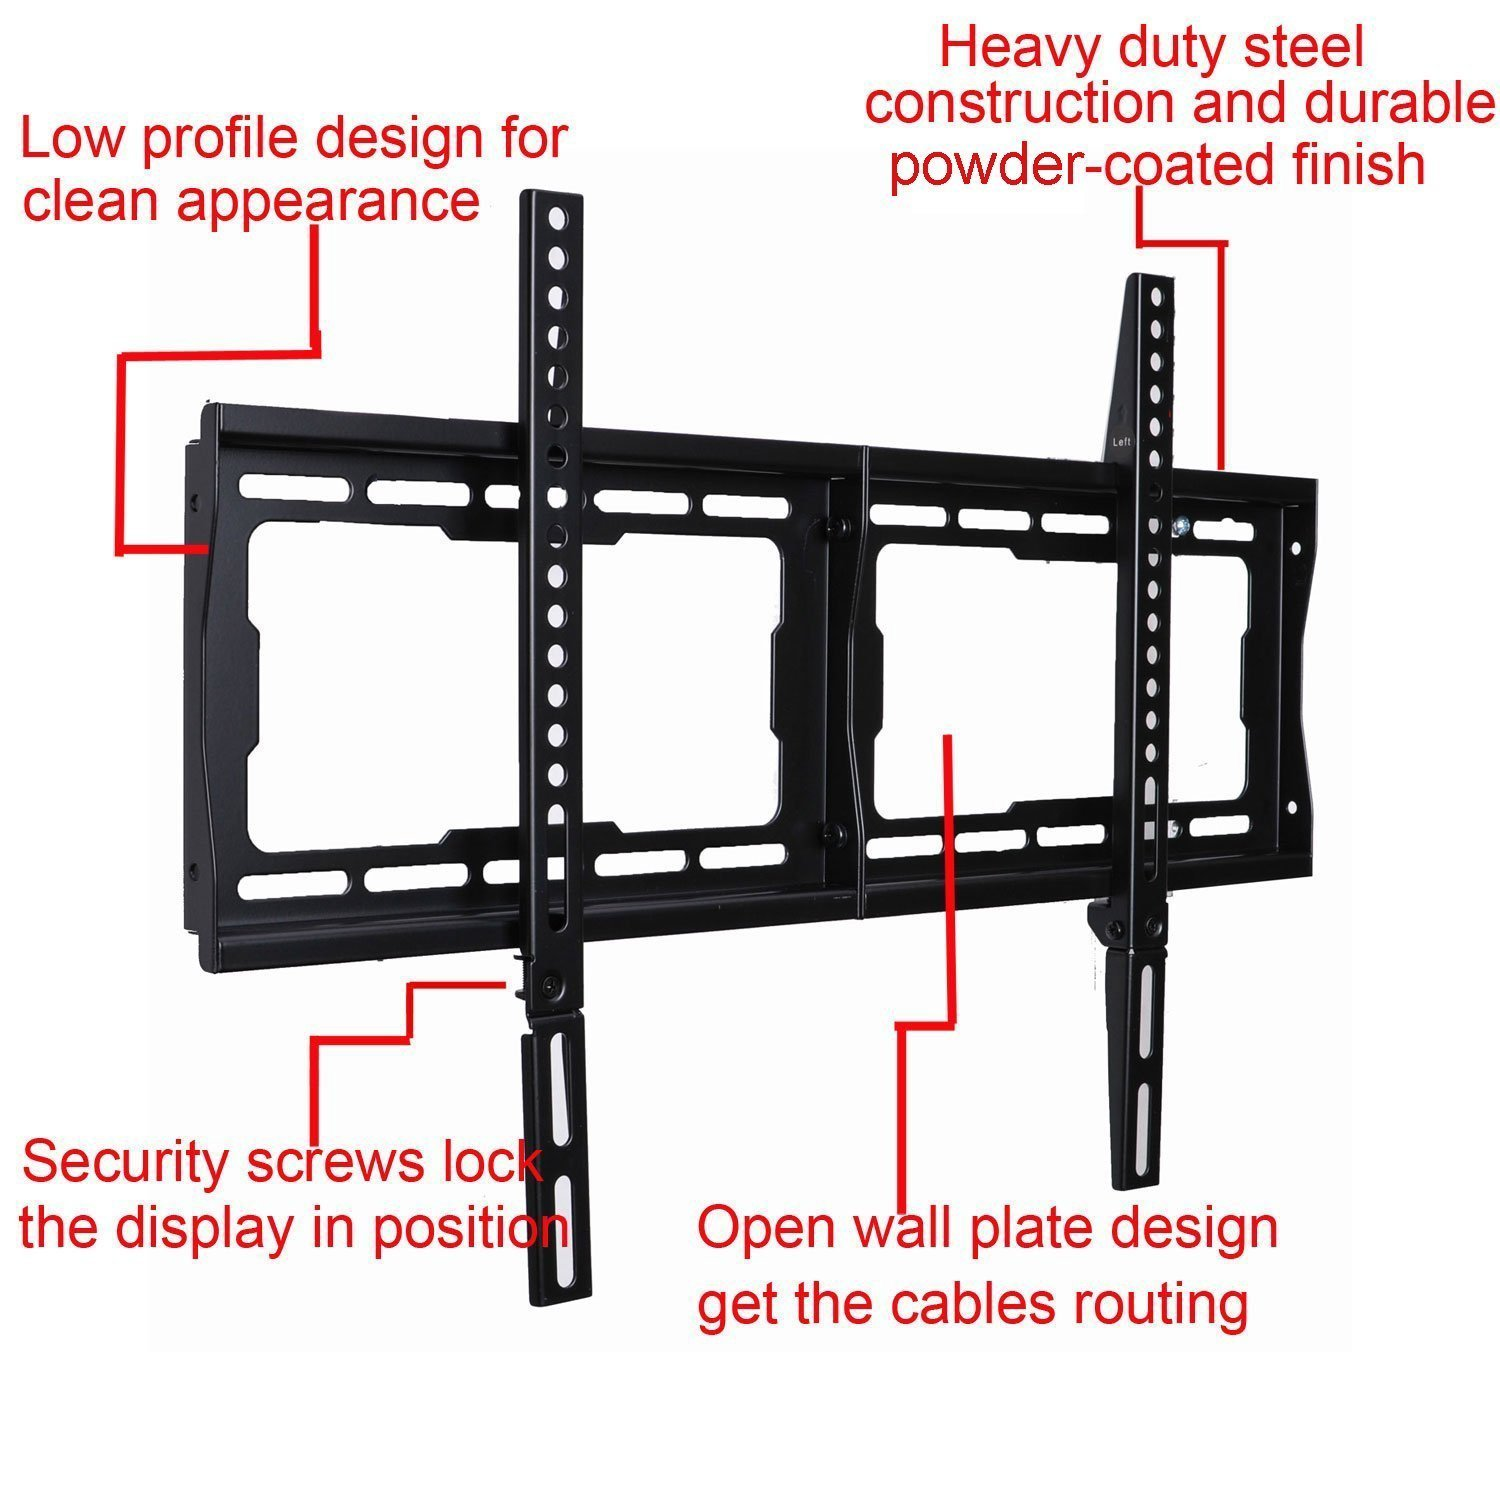 Low Profile Tv Wall Mount Bracket For Most 32 75 Lcd Led Plasma Hdtv Compatible With Sony Bravia Samsung Lg Haier Panasonic Vizio Sharp Aquos